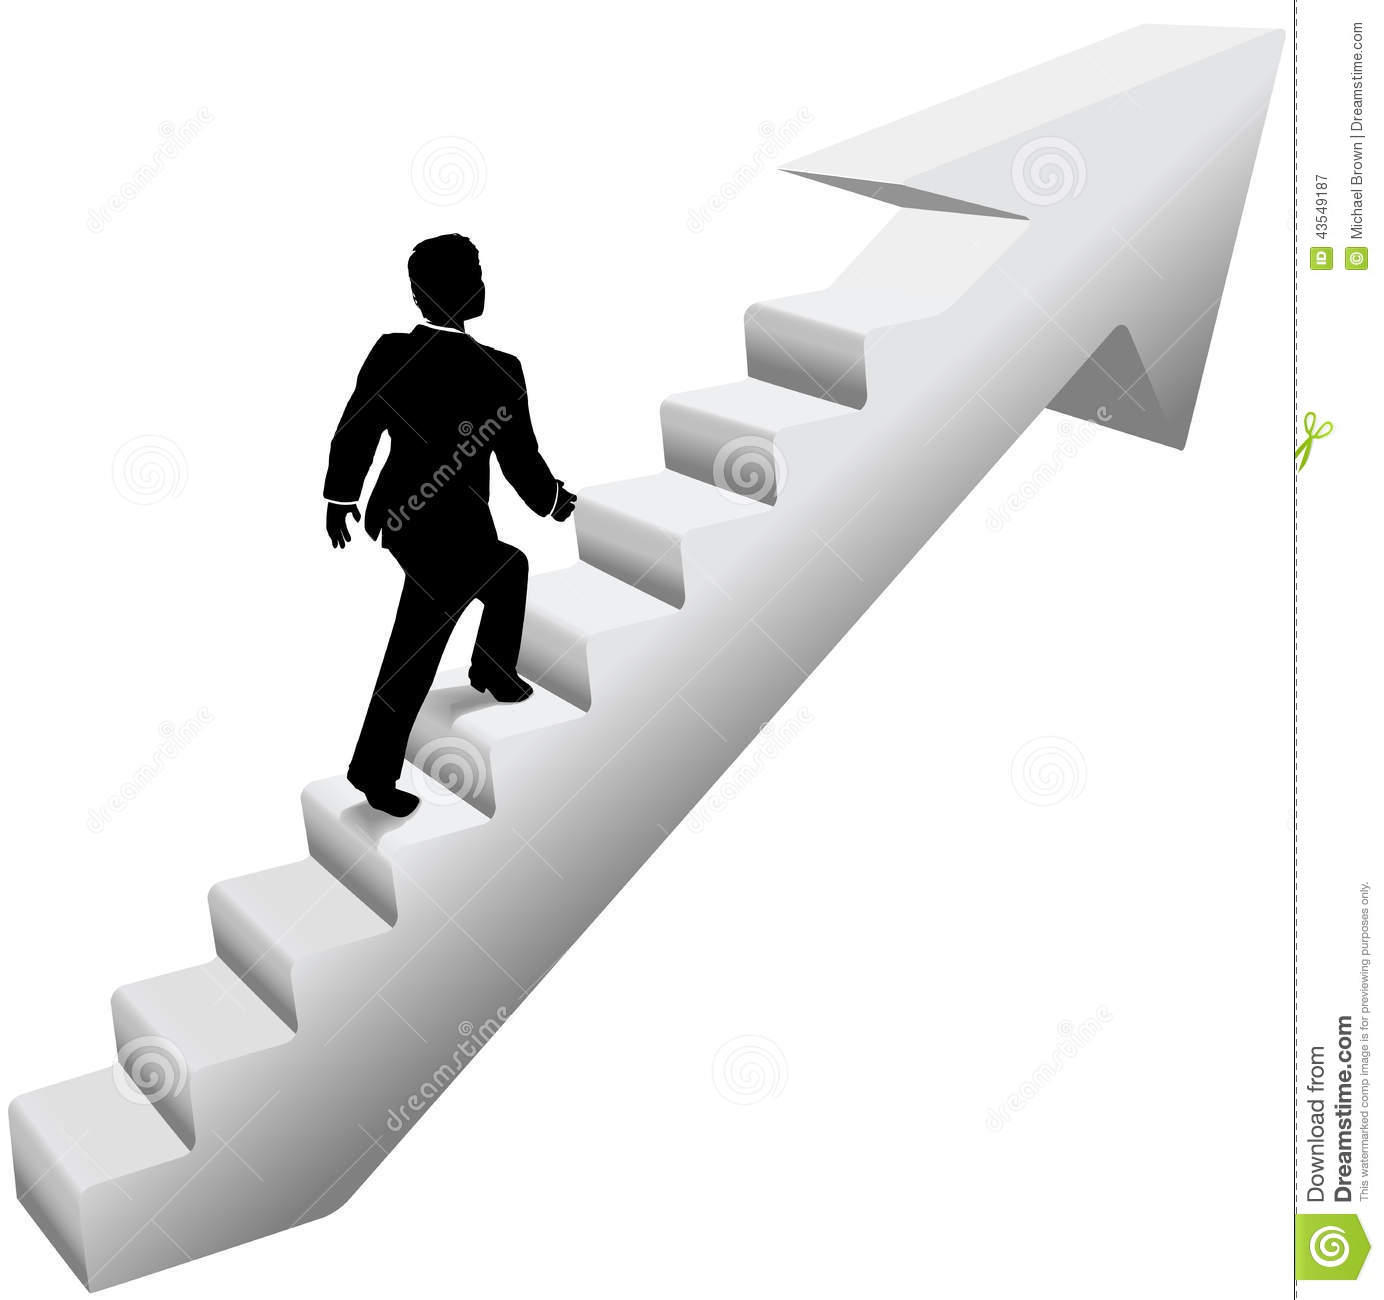 Business Man Climb Stairs Success Stock Vector - Illustration of ... for Climbing Stairs To Success  66pct